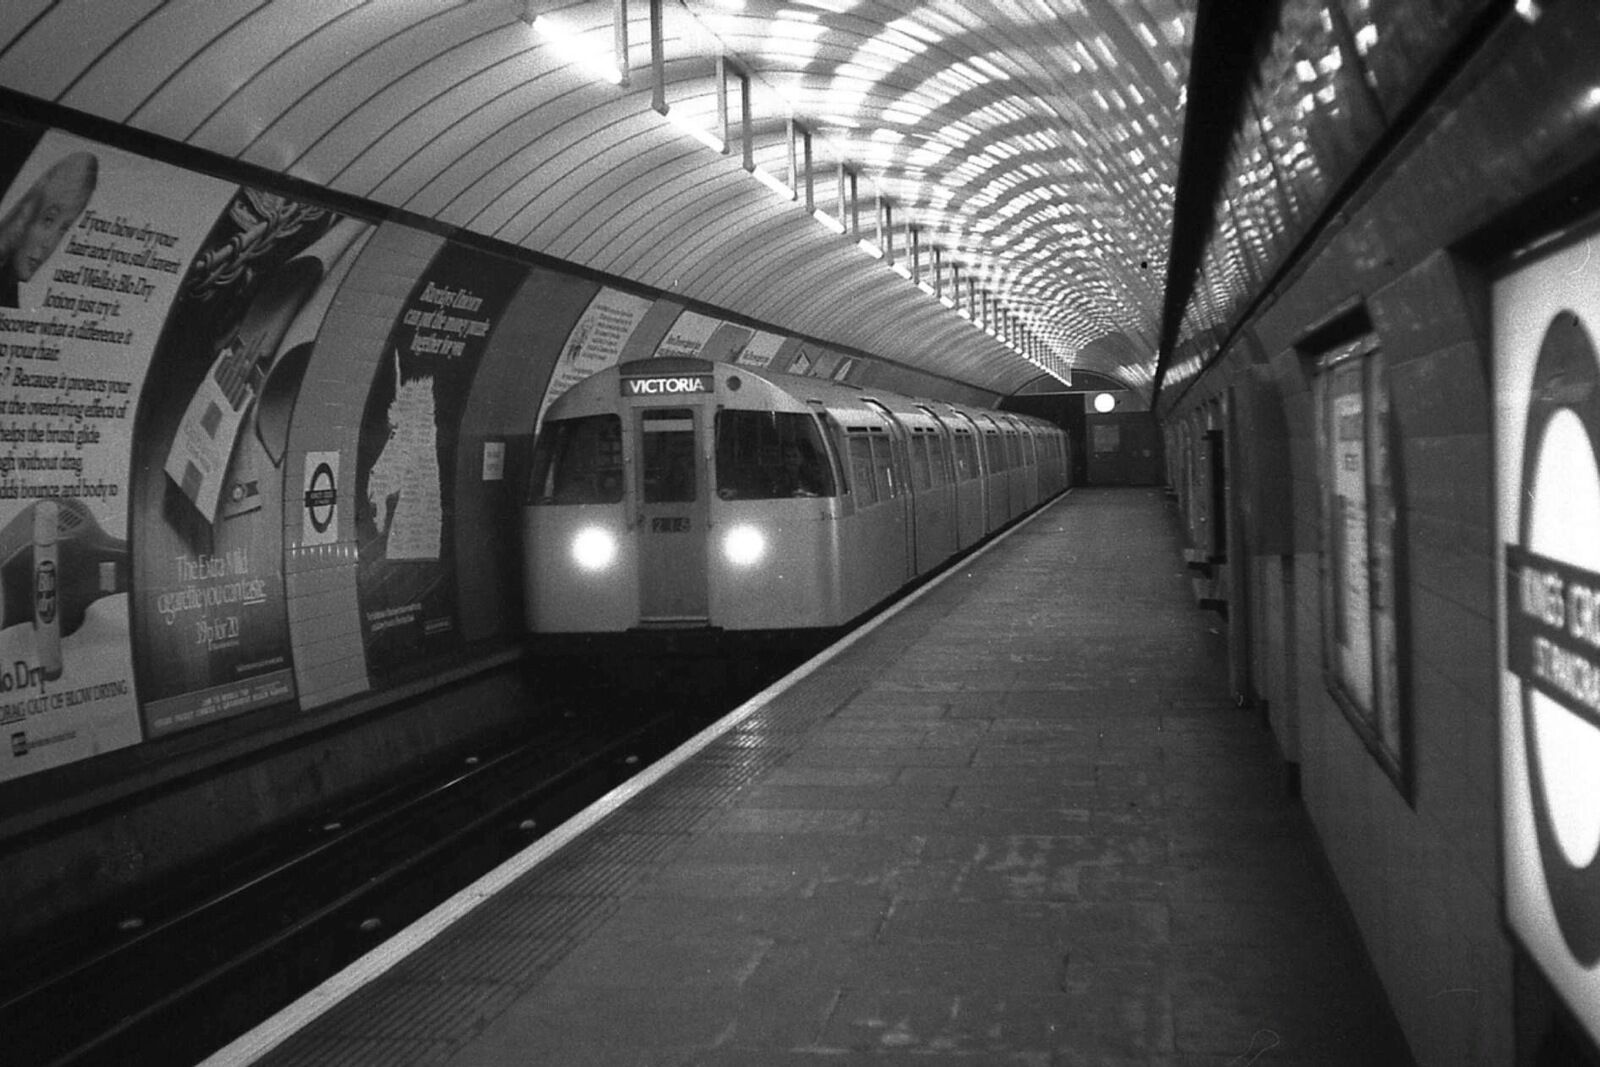 London Underground Victoria Line Kings Cross 1970 Rail - The Victoria Line's really big 50th birthday!